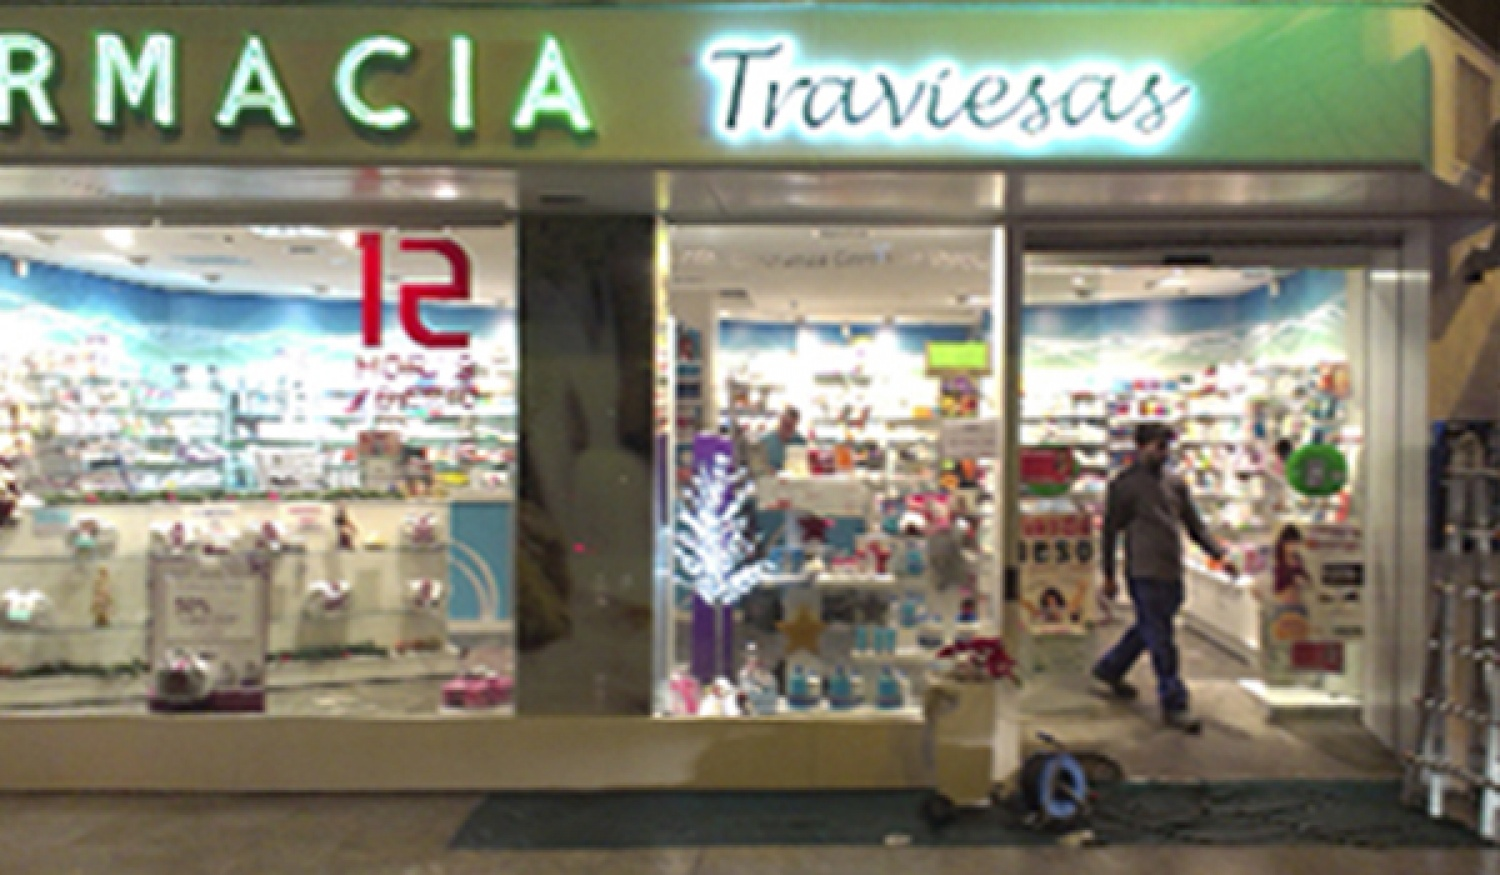 Farmacia Traviesas